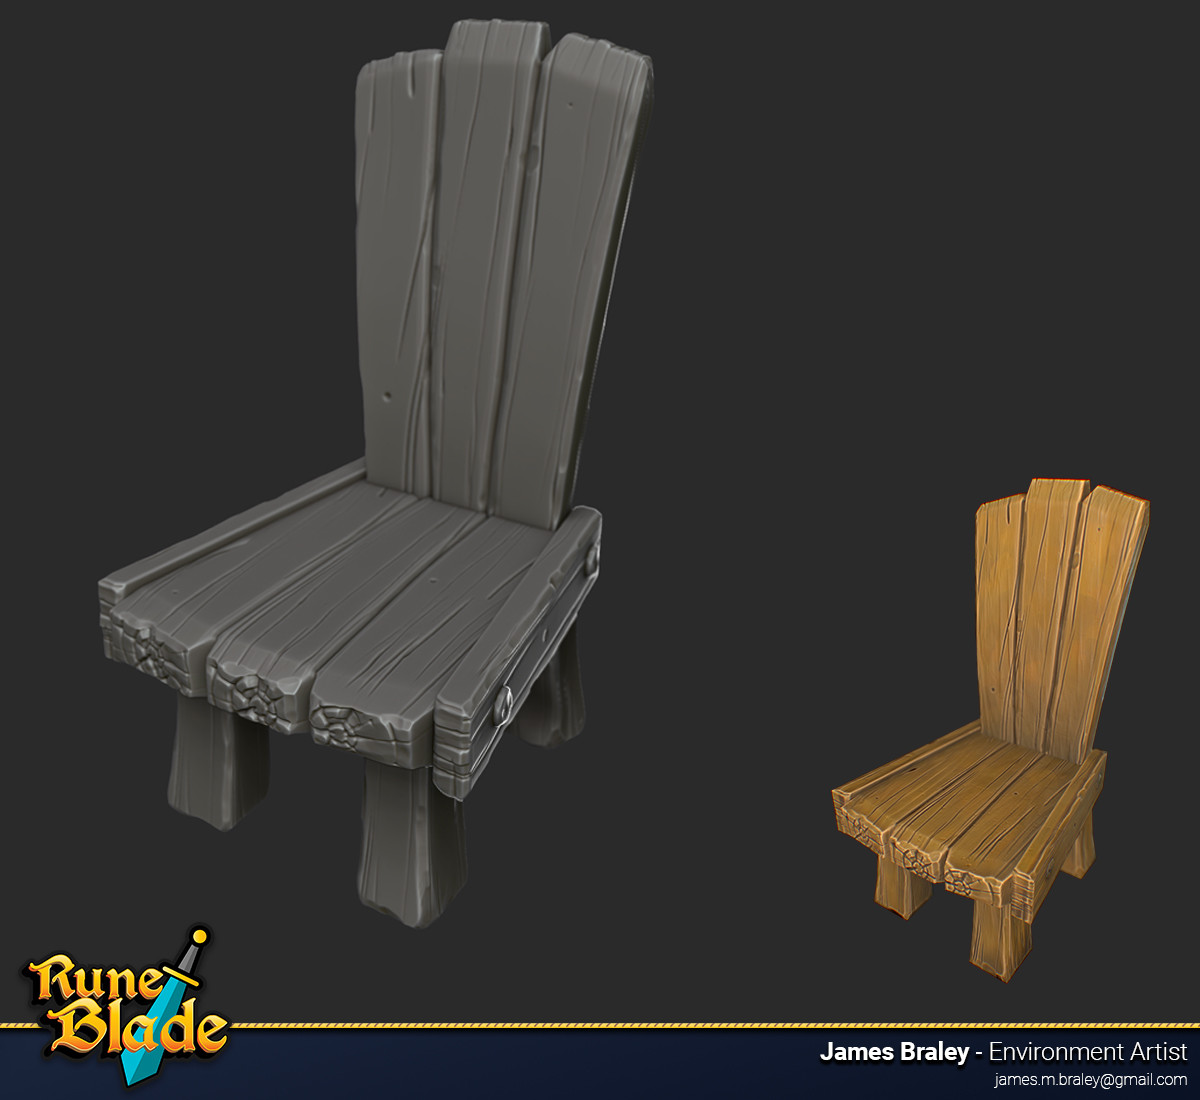 James braley braley runeblade chair